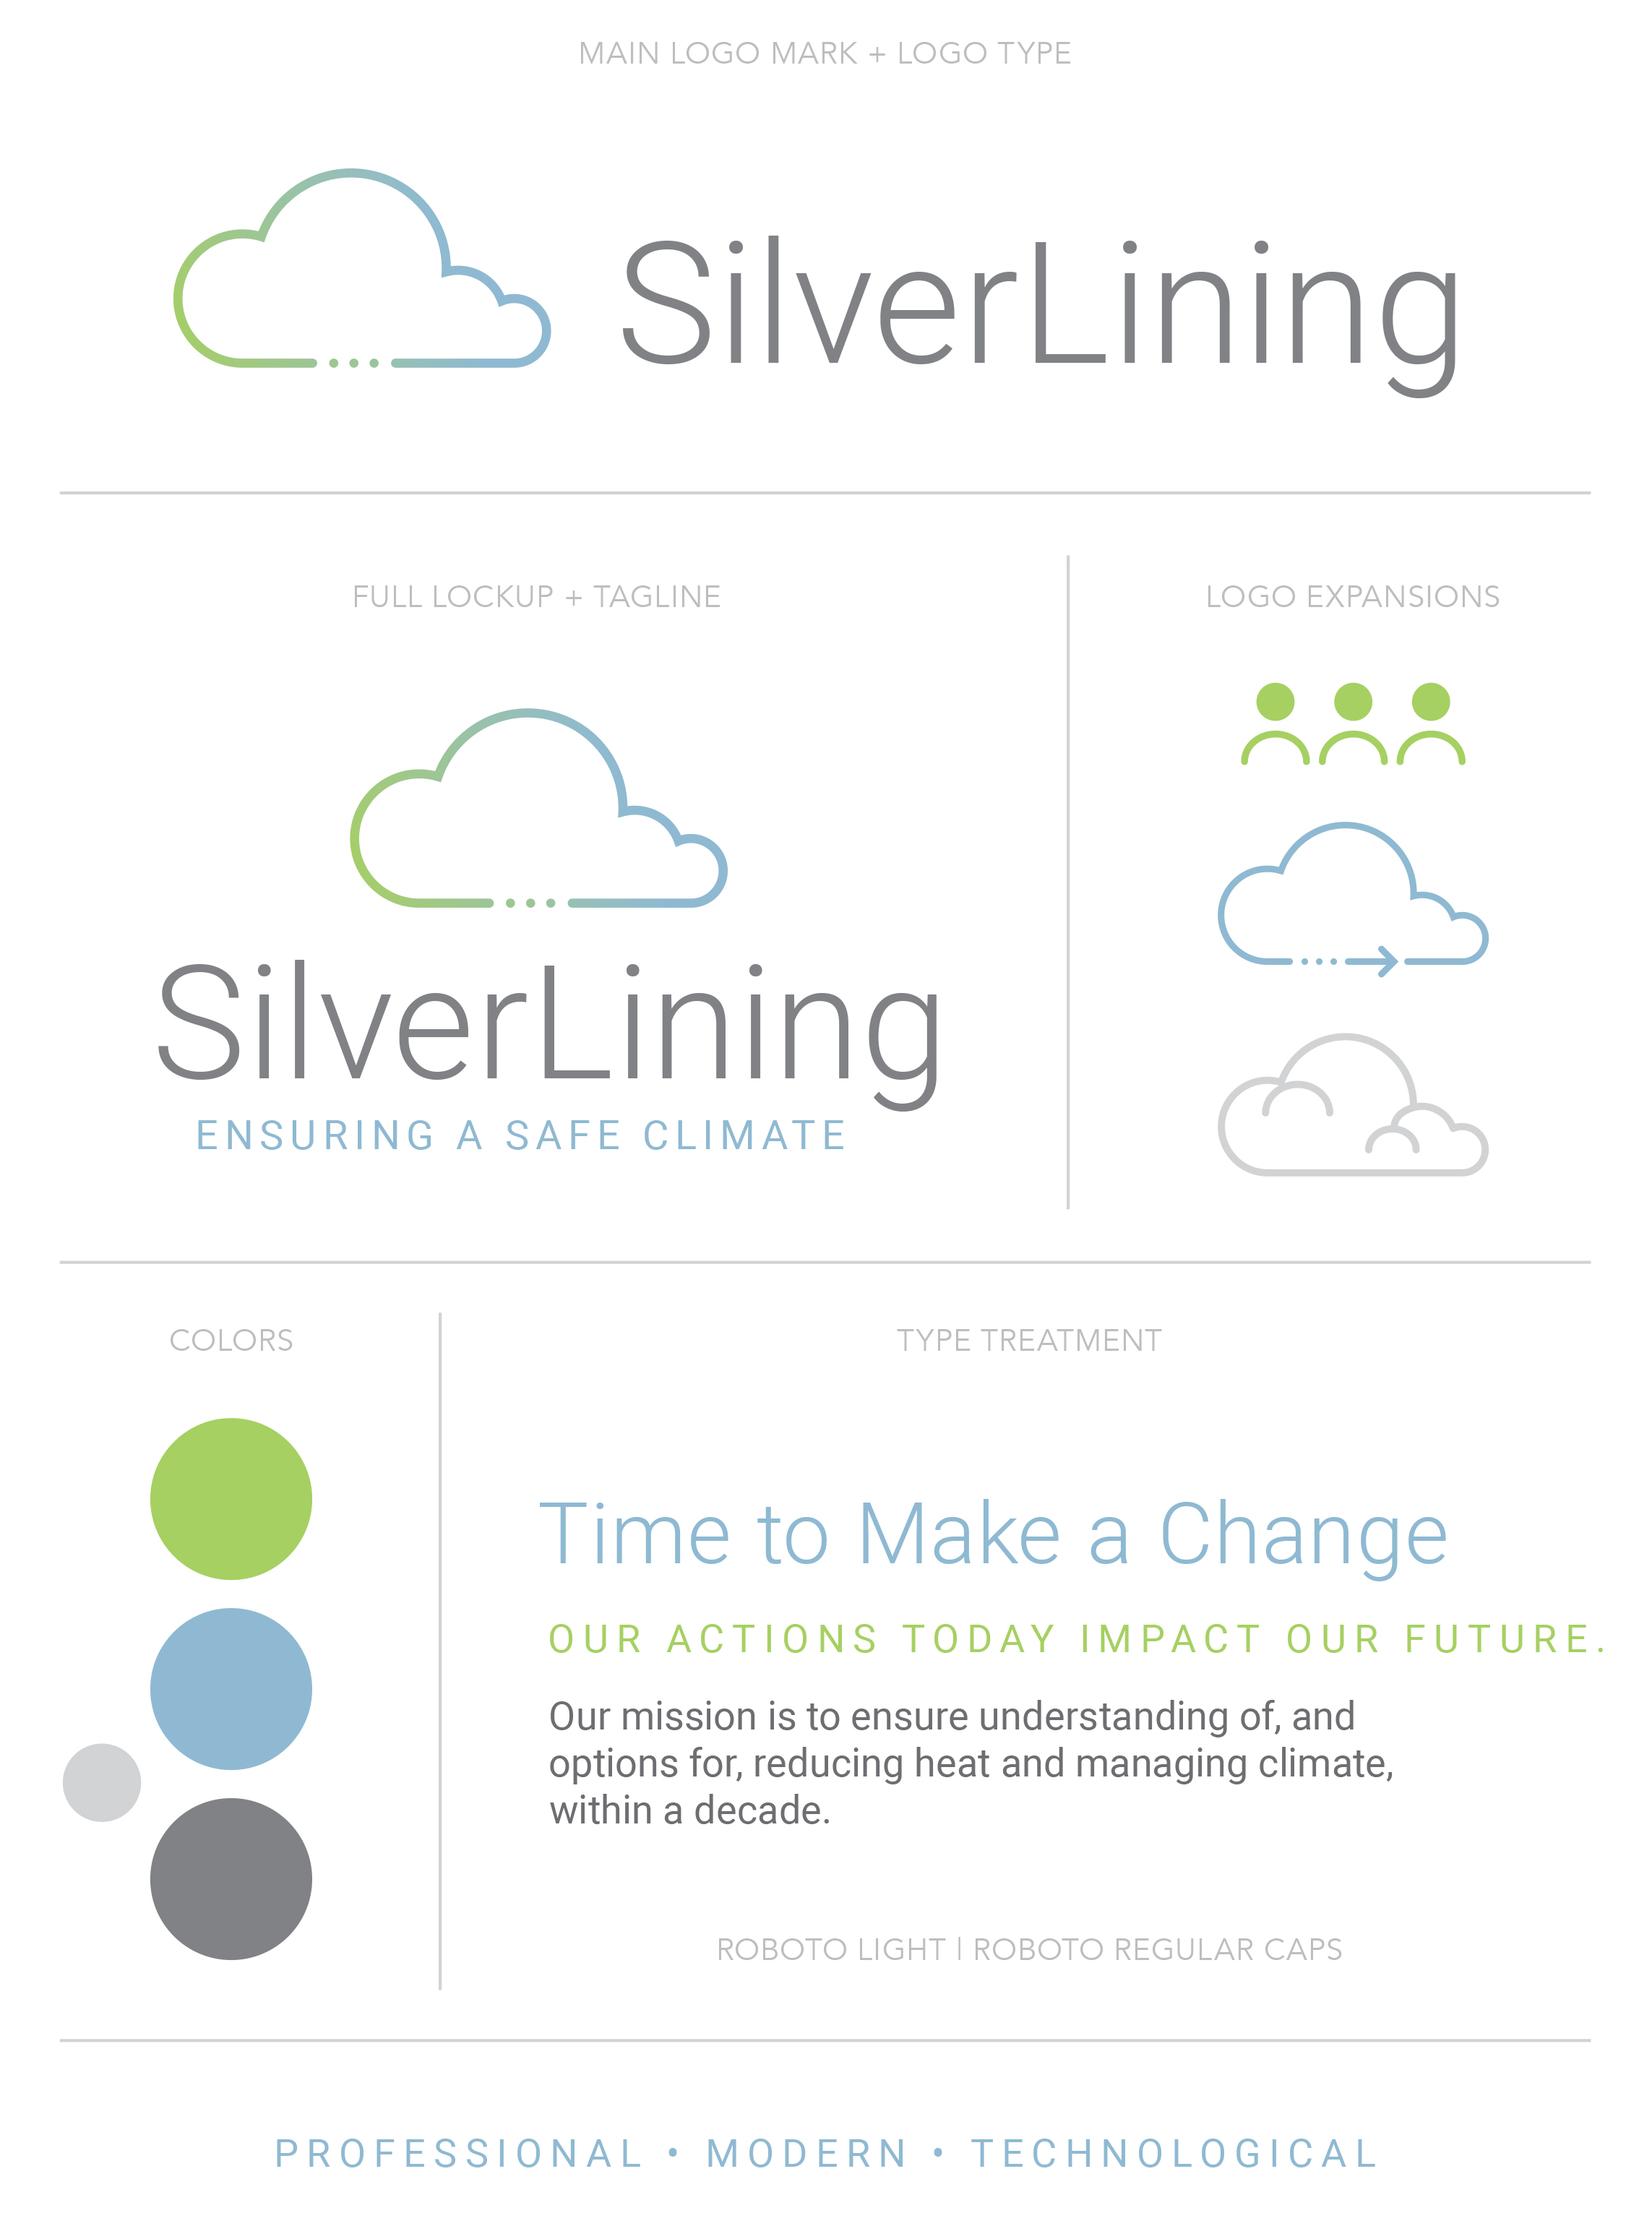 SilverLining_Identity-Overview.jpg